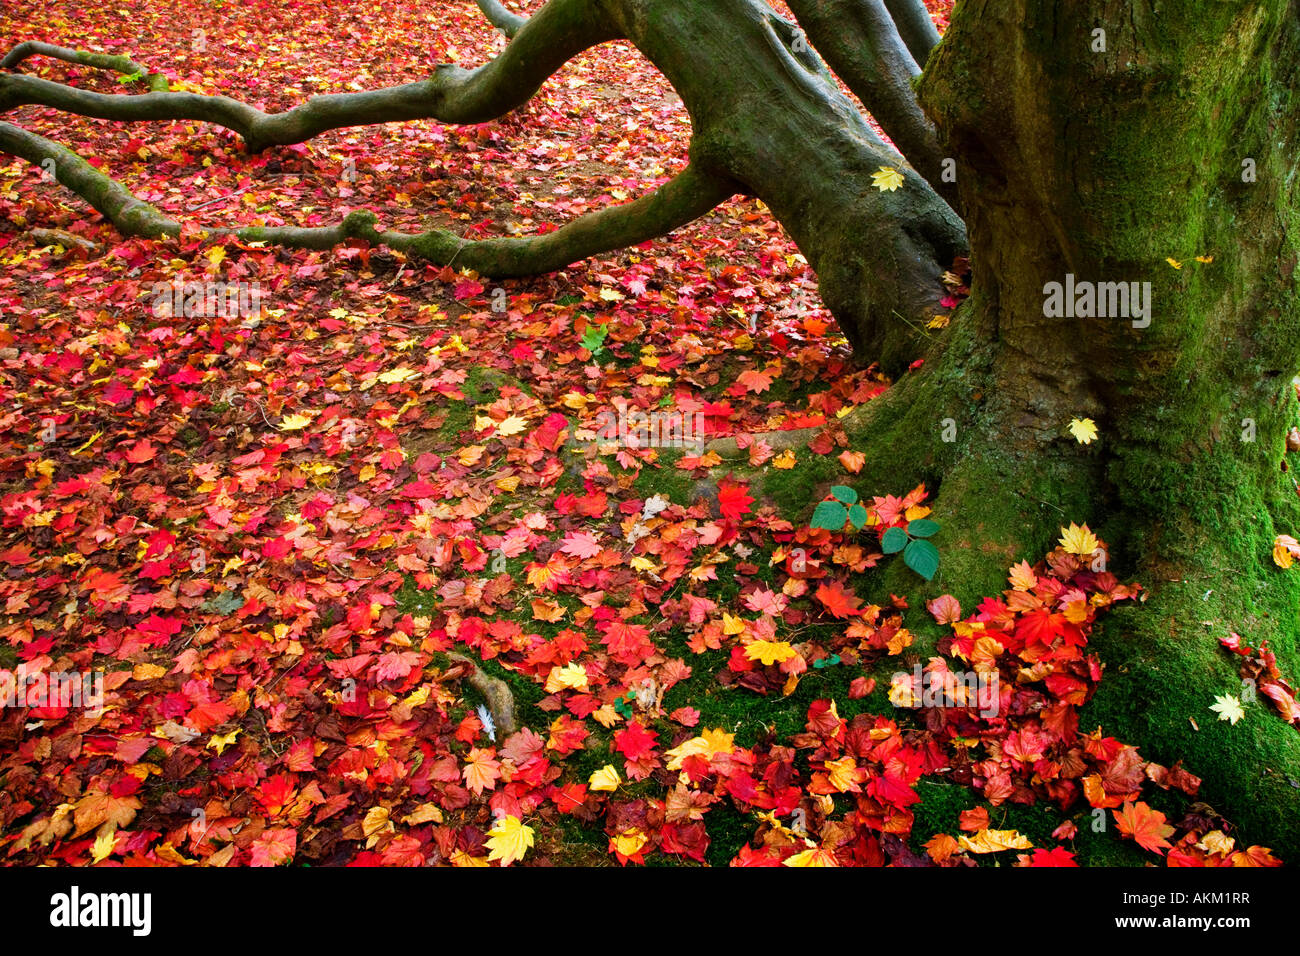 Fallen red acer autumn leaves at the foot of a tree trunk in Westonbirt Arboretum, Tetbury, Gloucestershire, England, Stock Photo